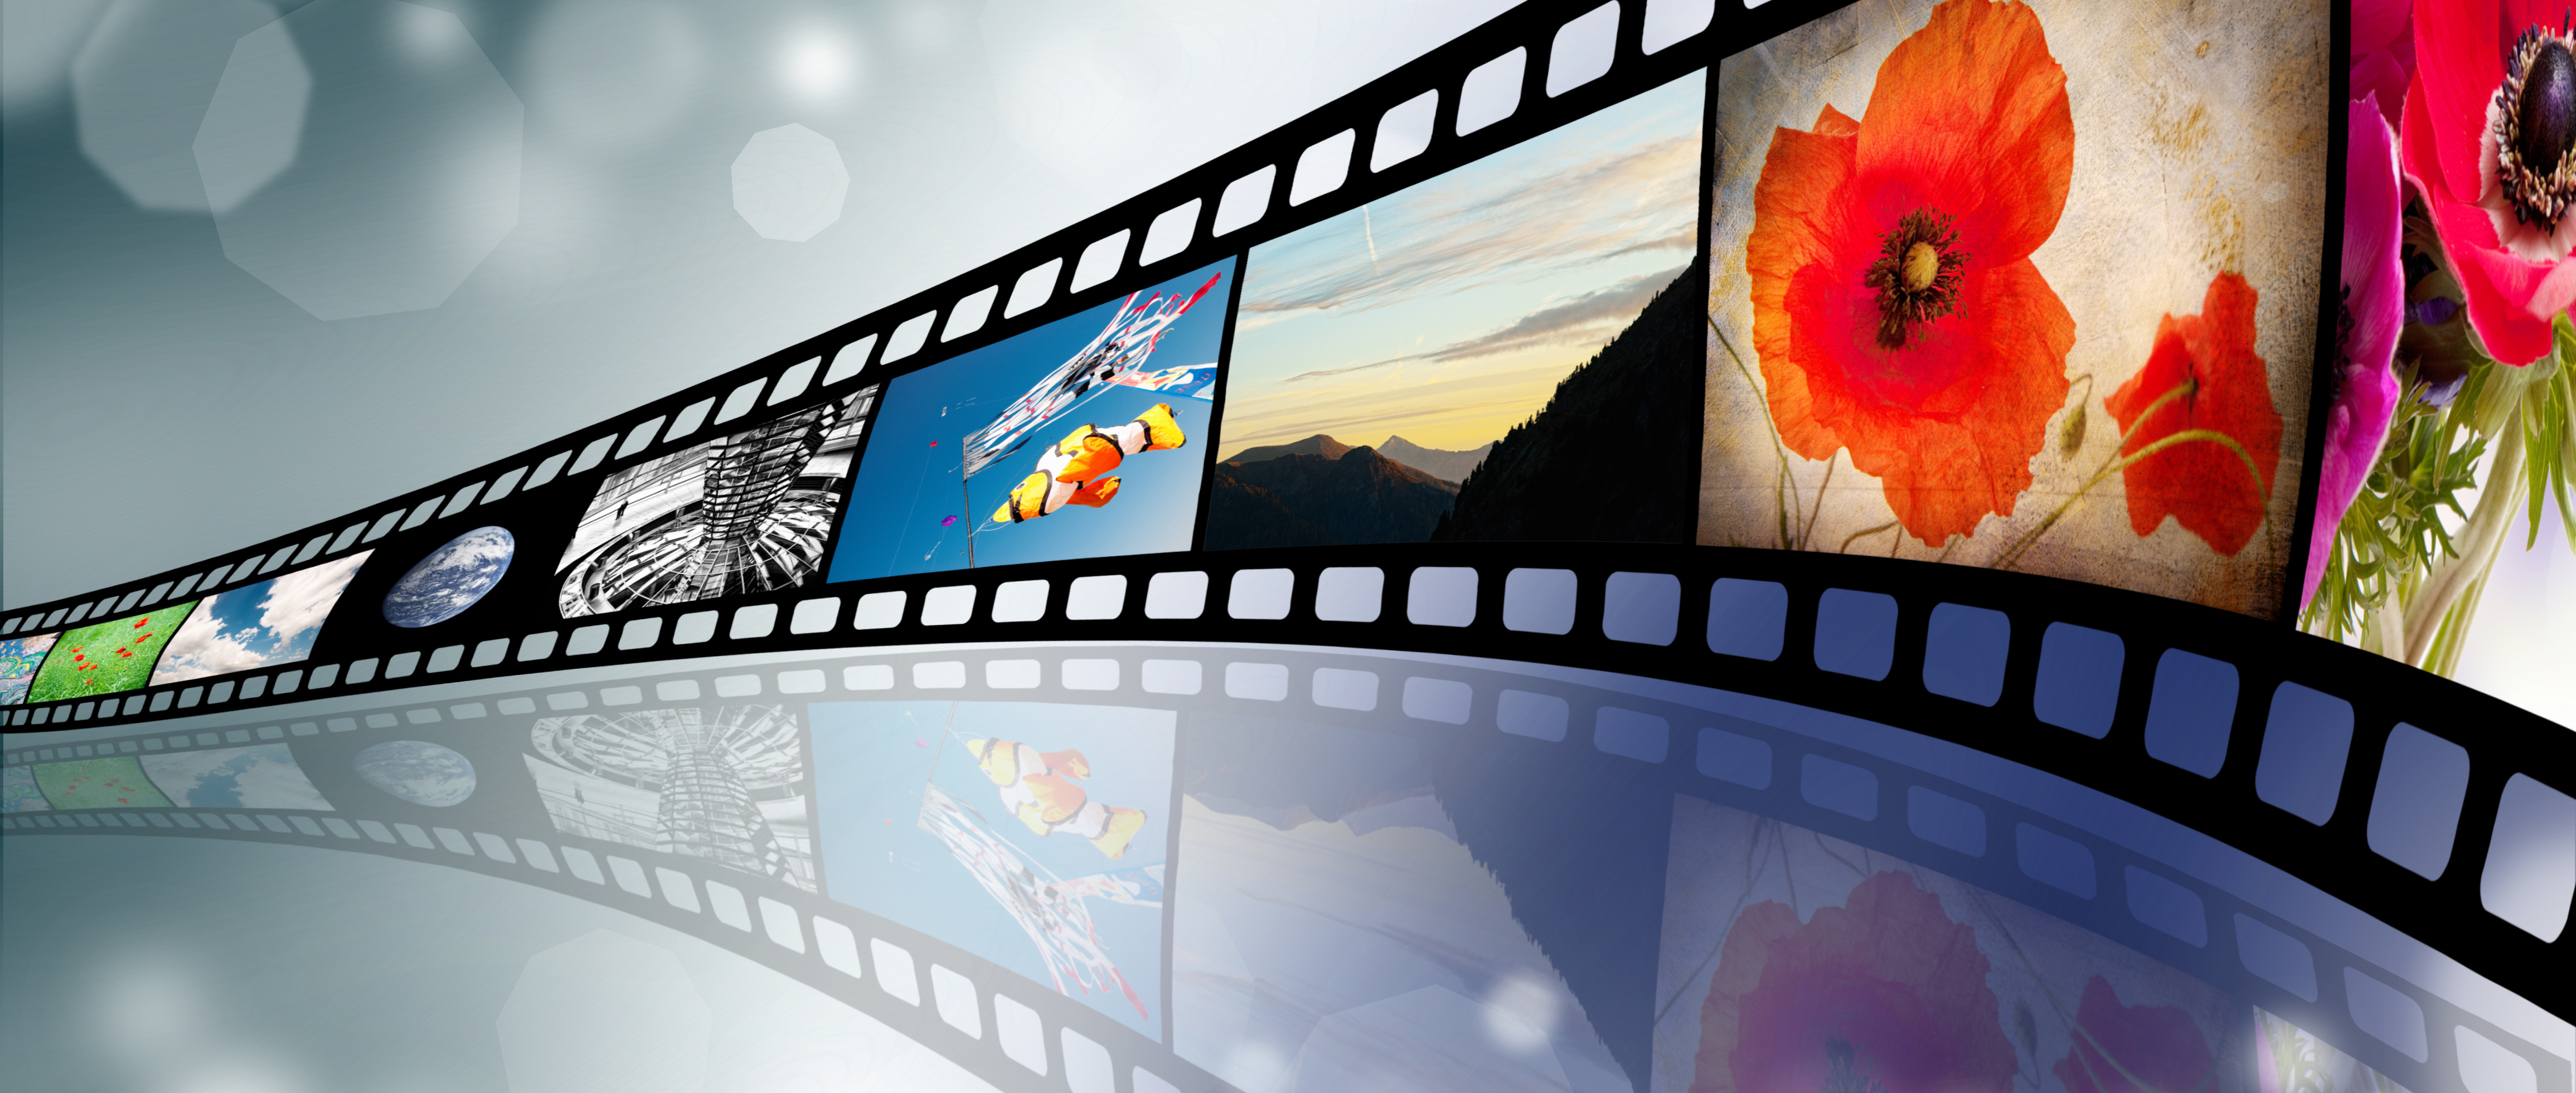 Tips for Planning Your Business Video Marketing Strategy